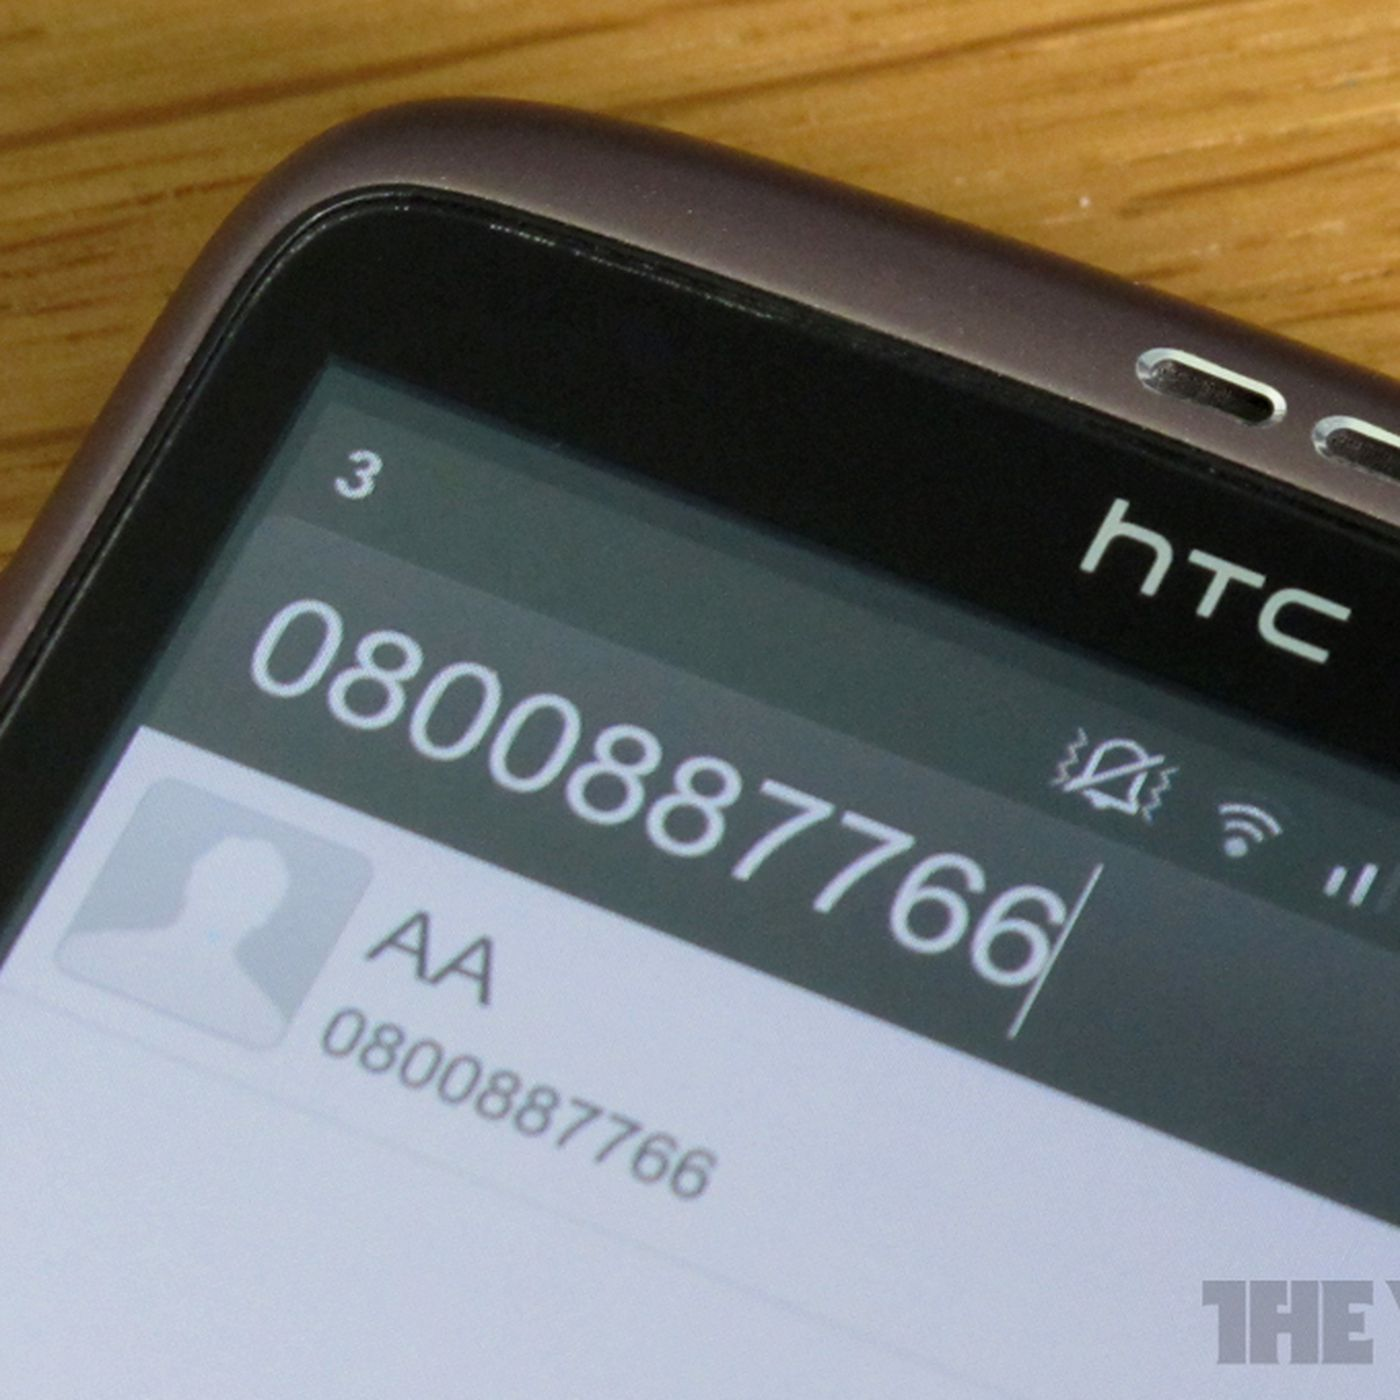 are 0800 numbers free from mobiles in uk